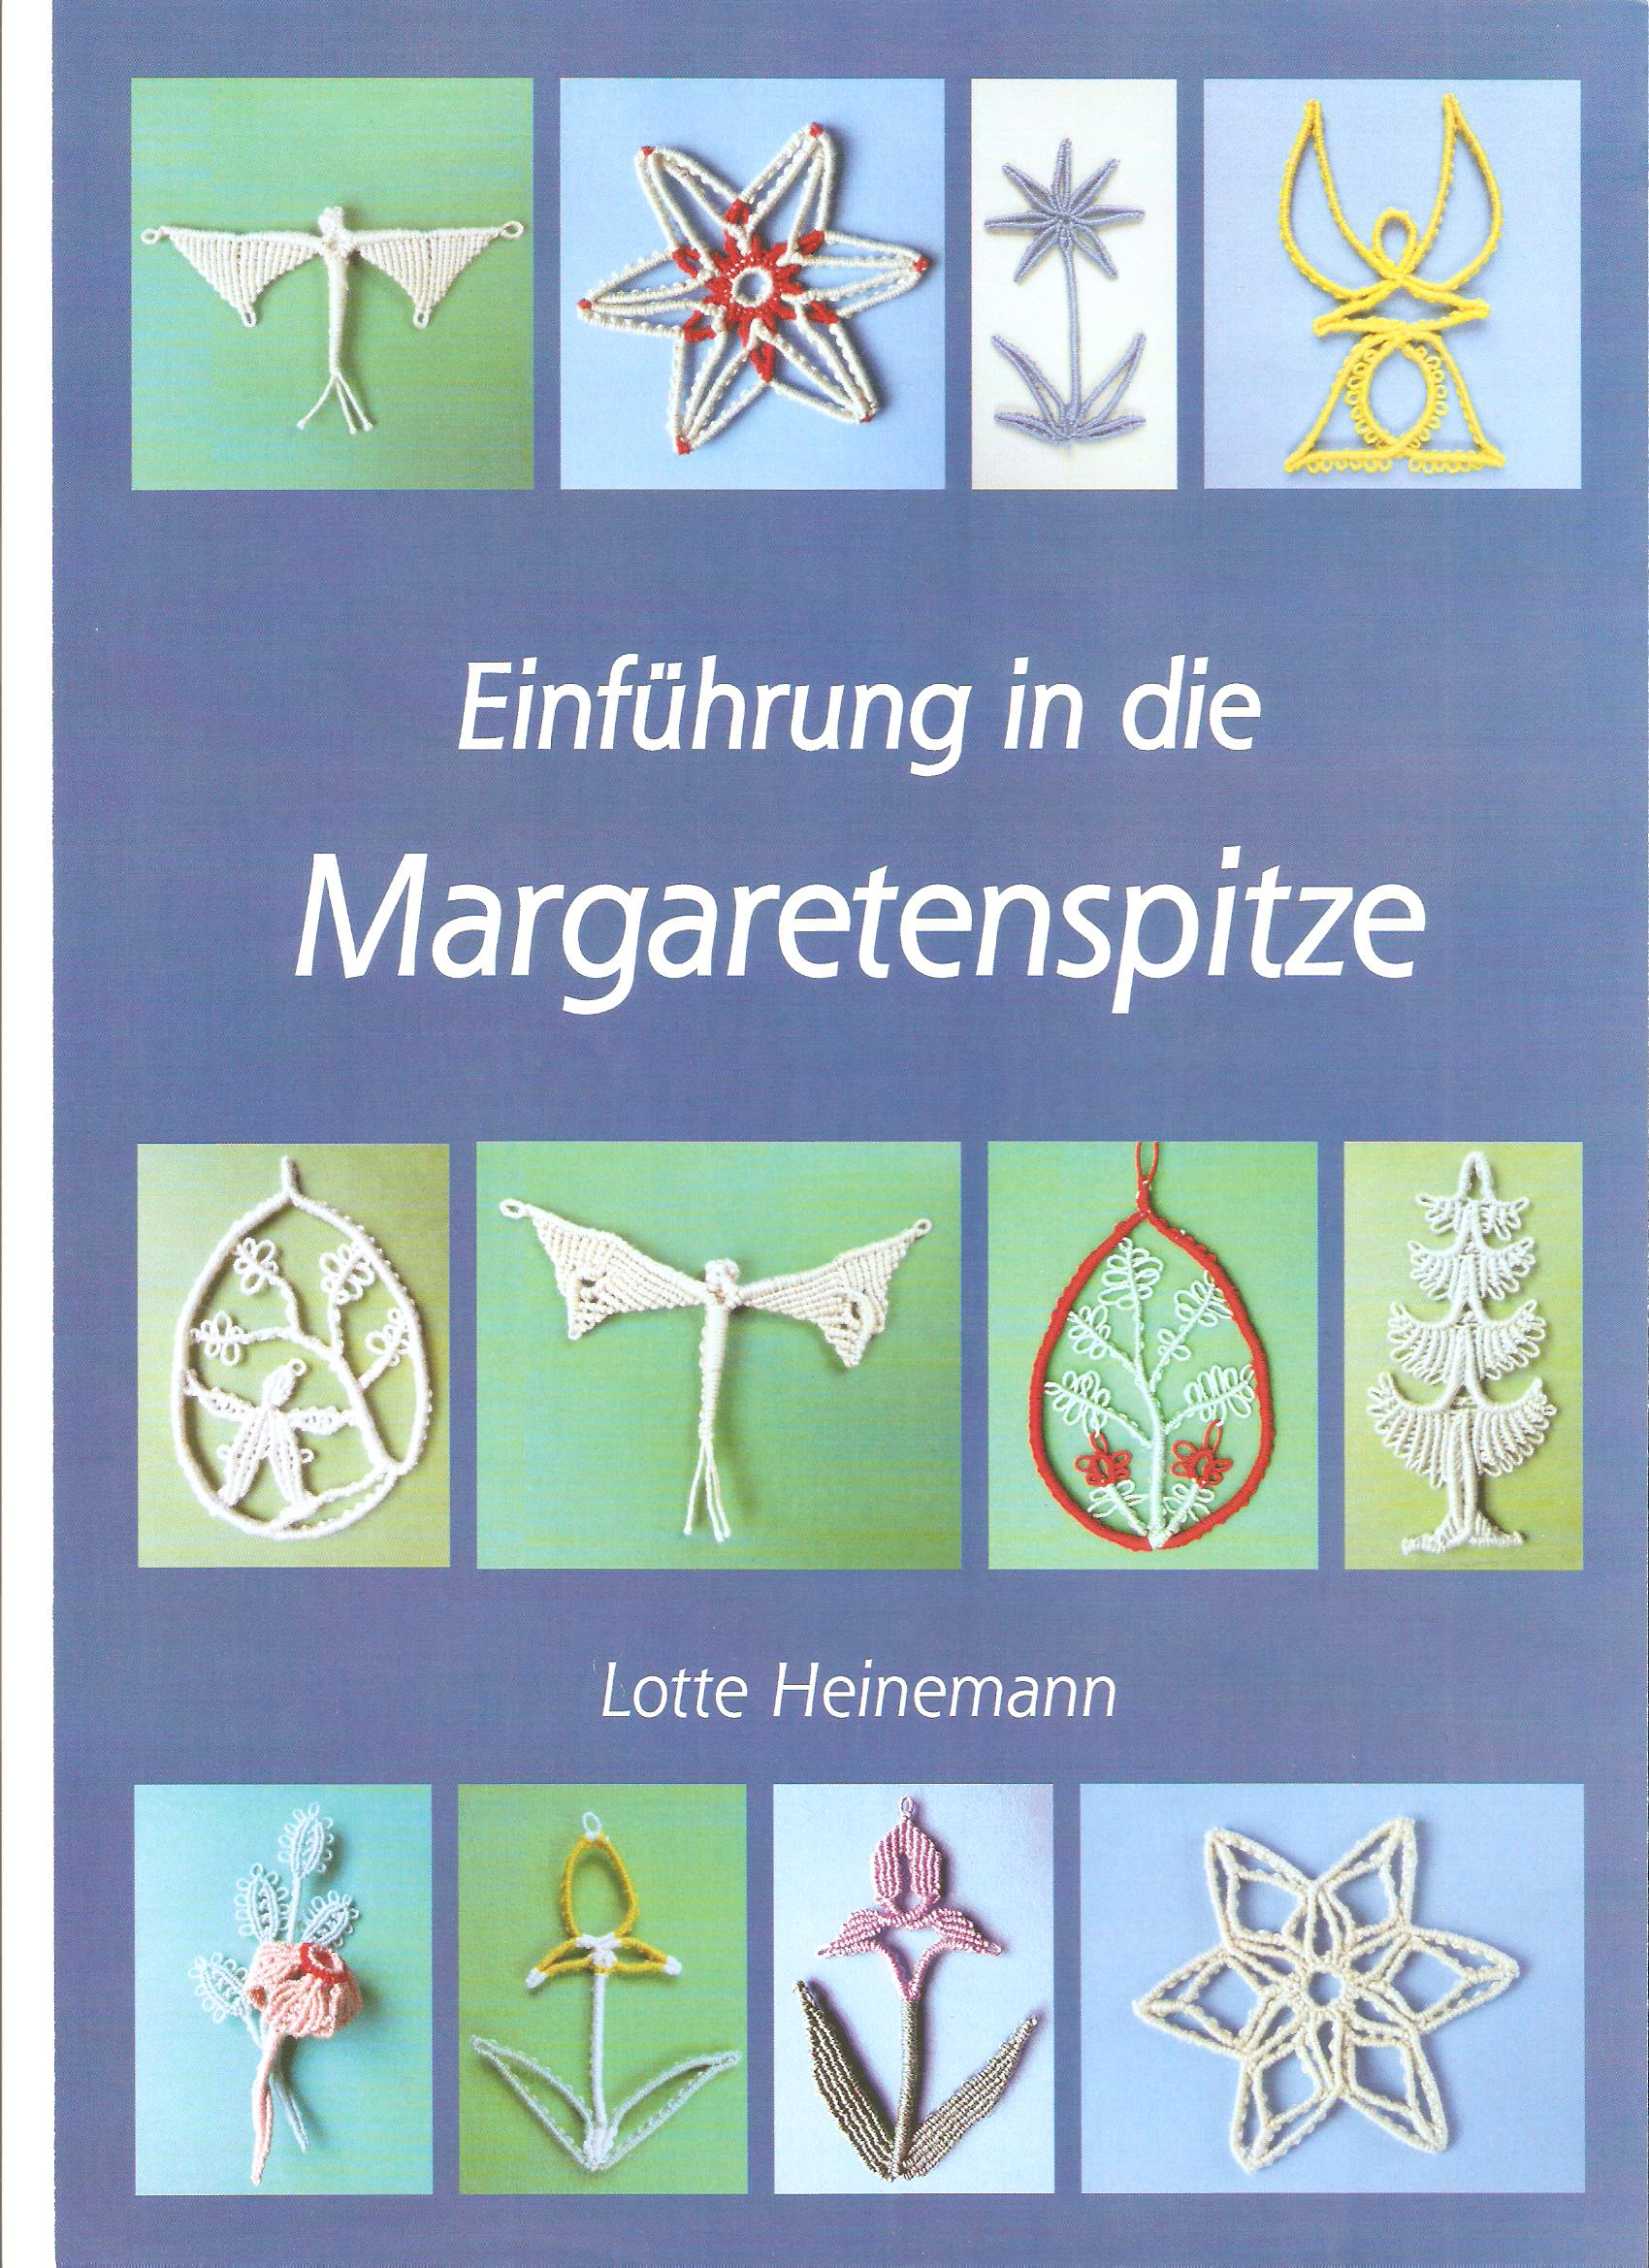 Einf�hrung in die Margaretenspitze by Lotte Heinemann